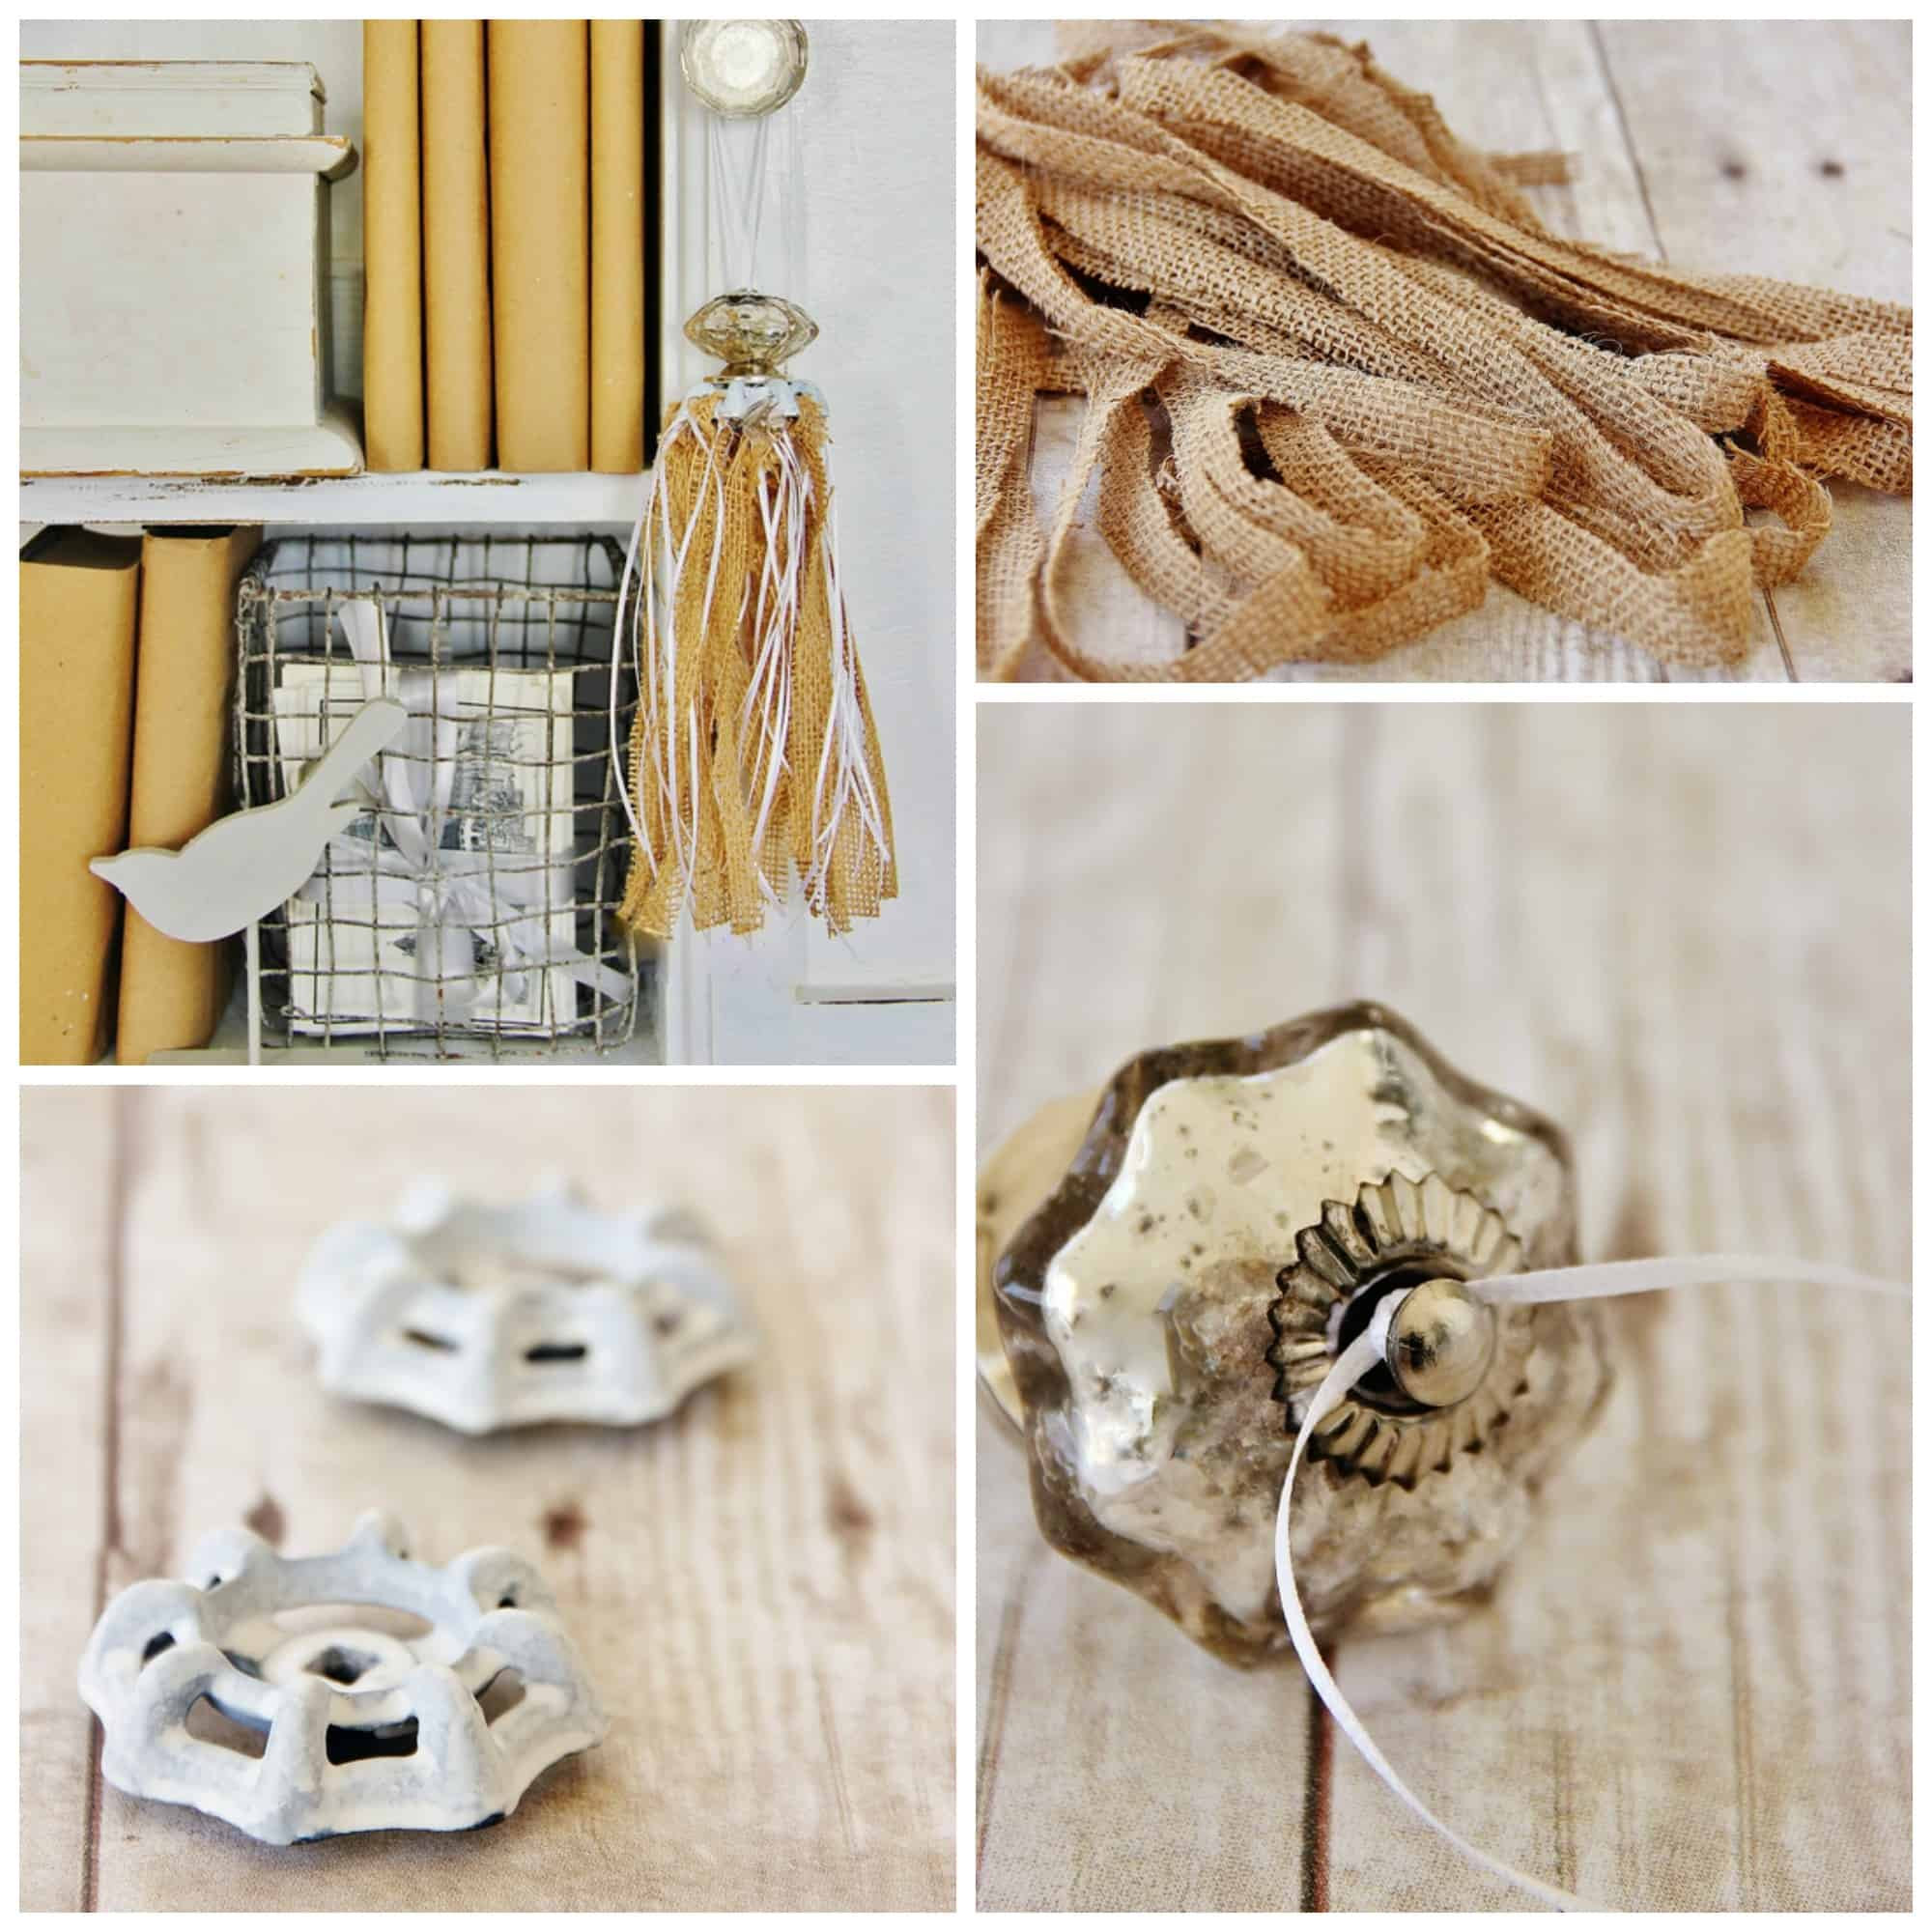 Five easy burlap projects thistlewood farm for Burlap crafts